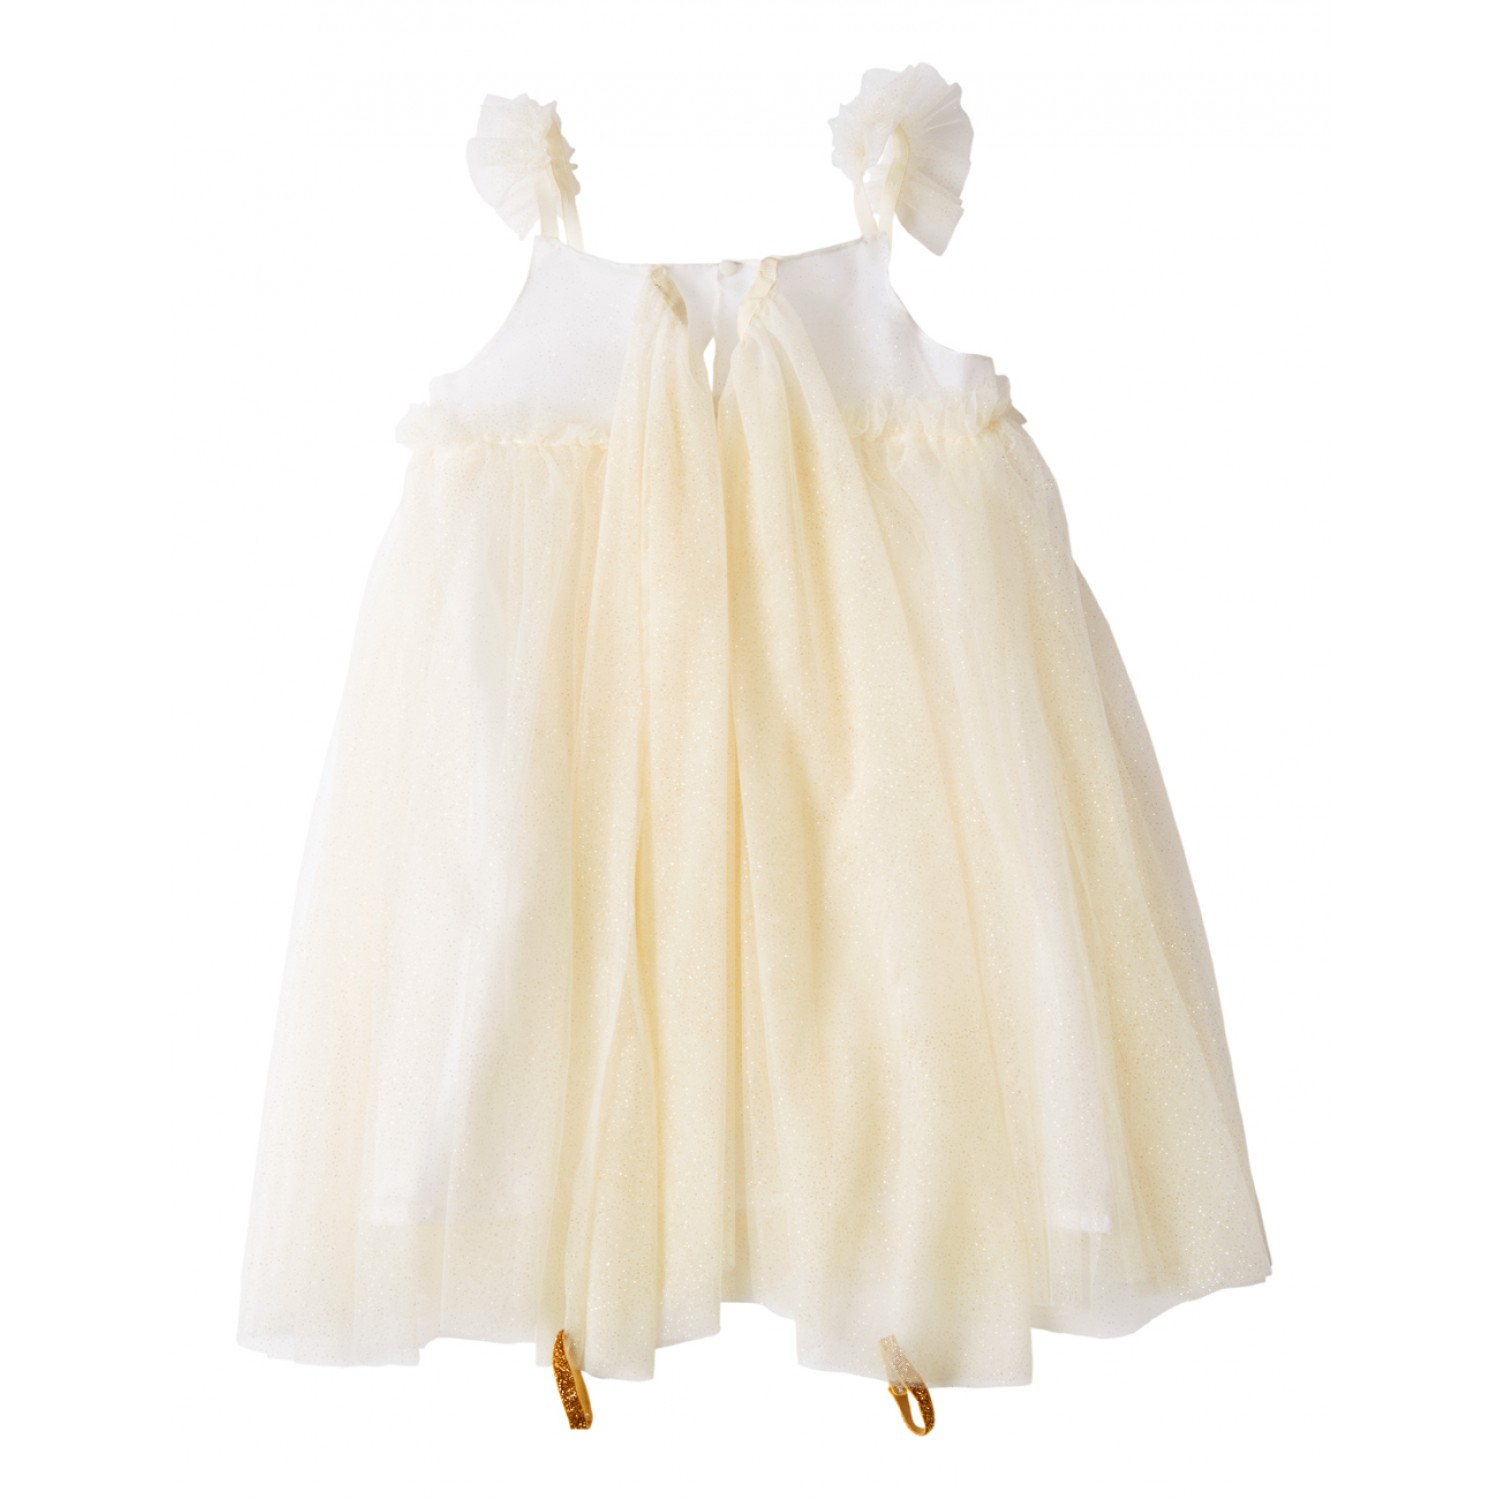 White Tulle Fairy Dress Up 5-6 years